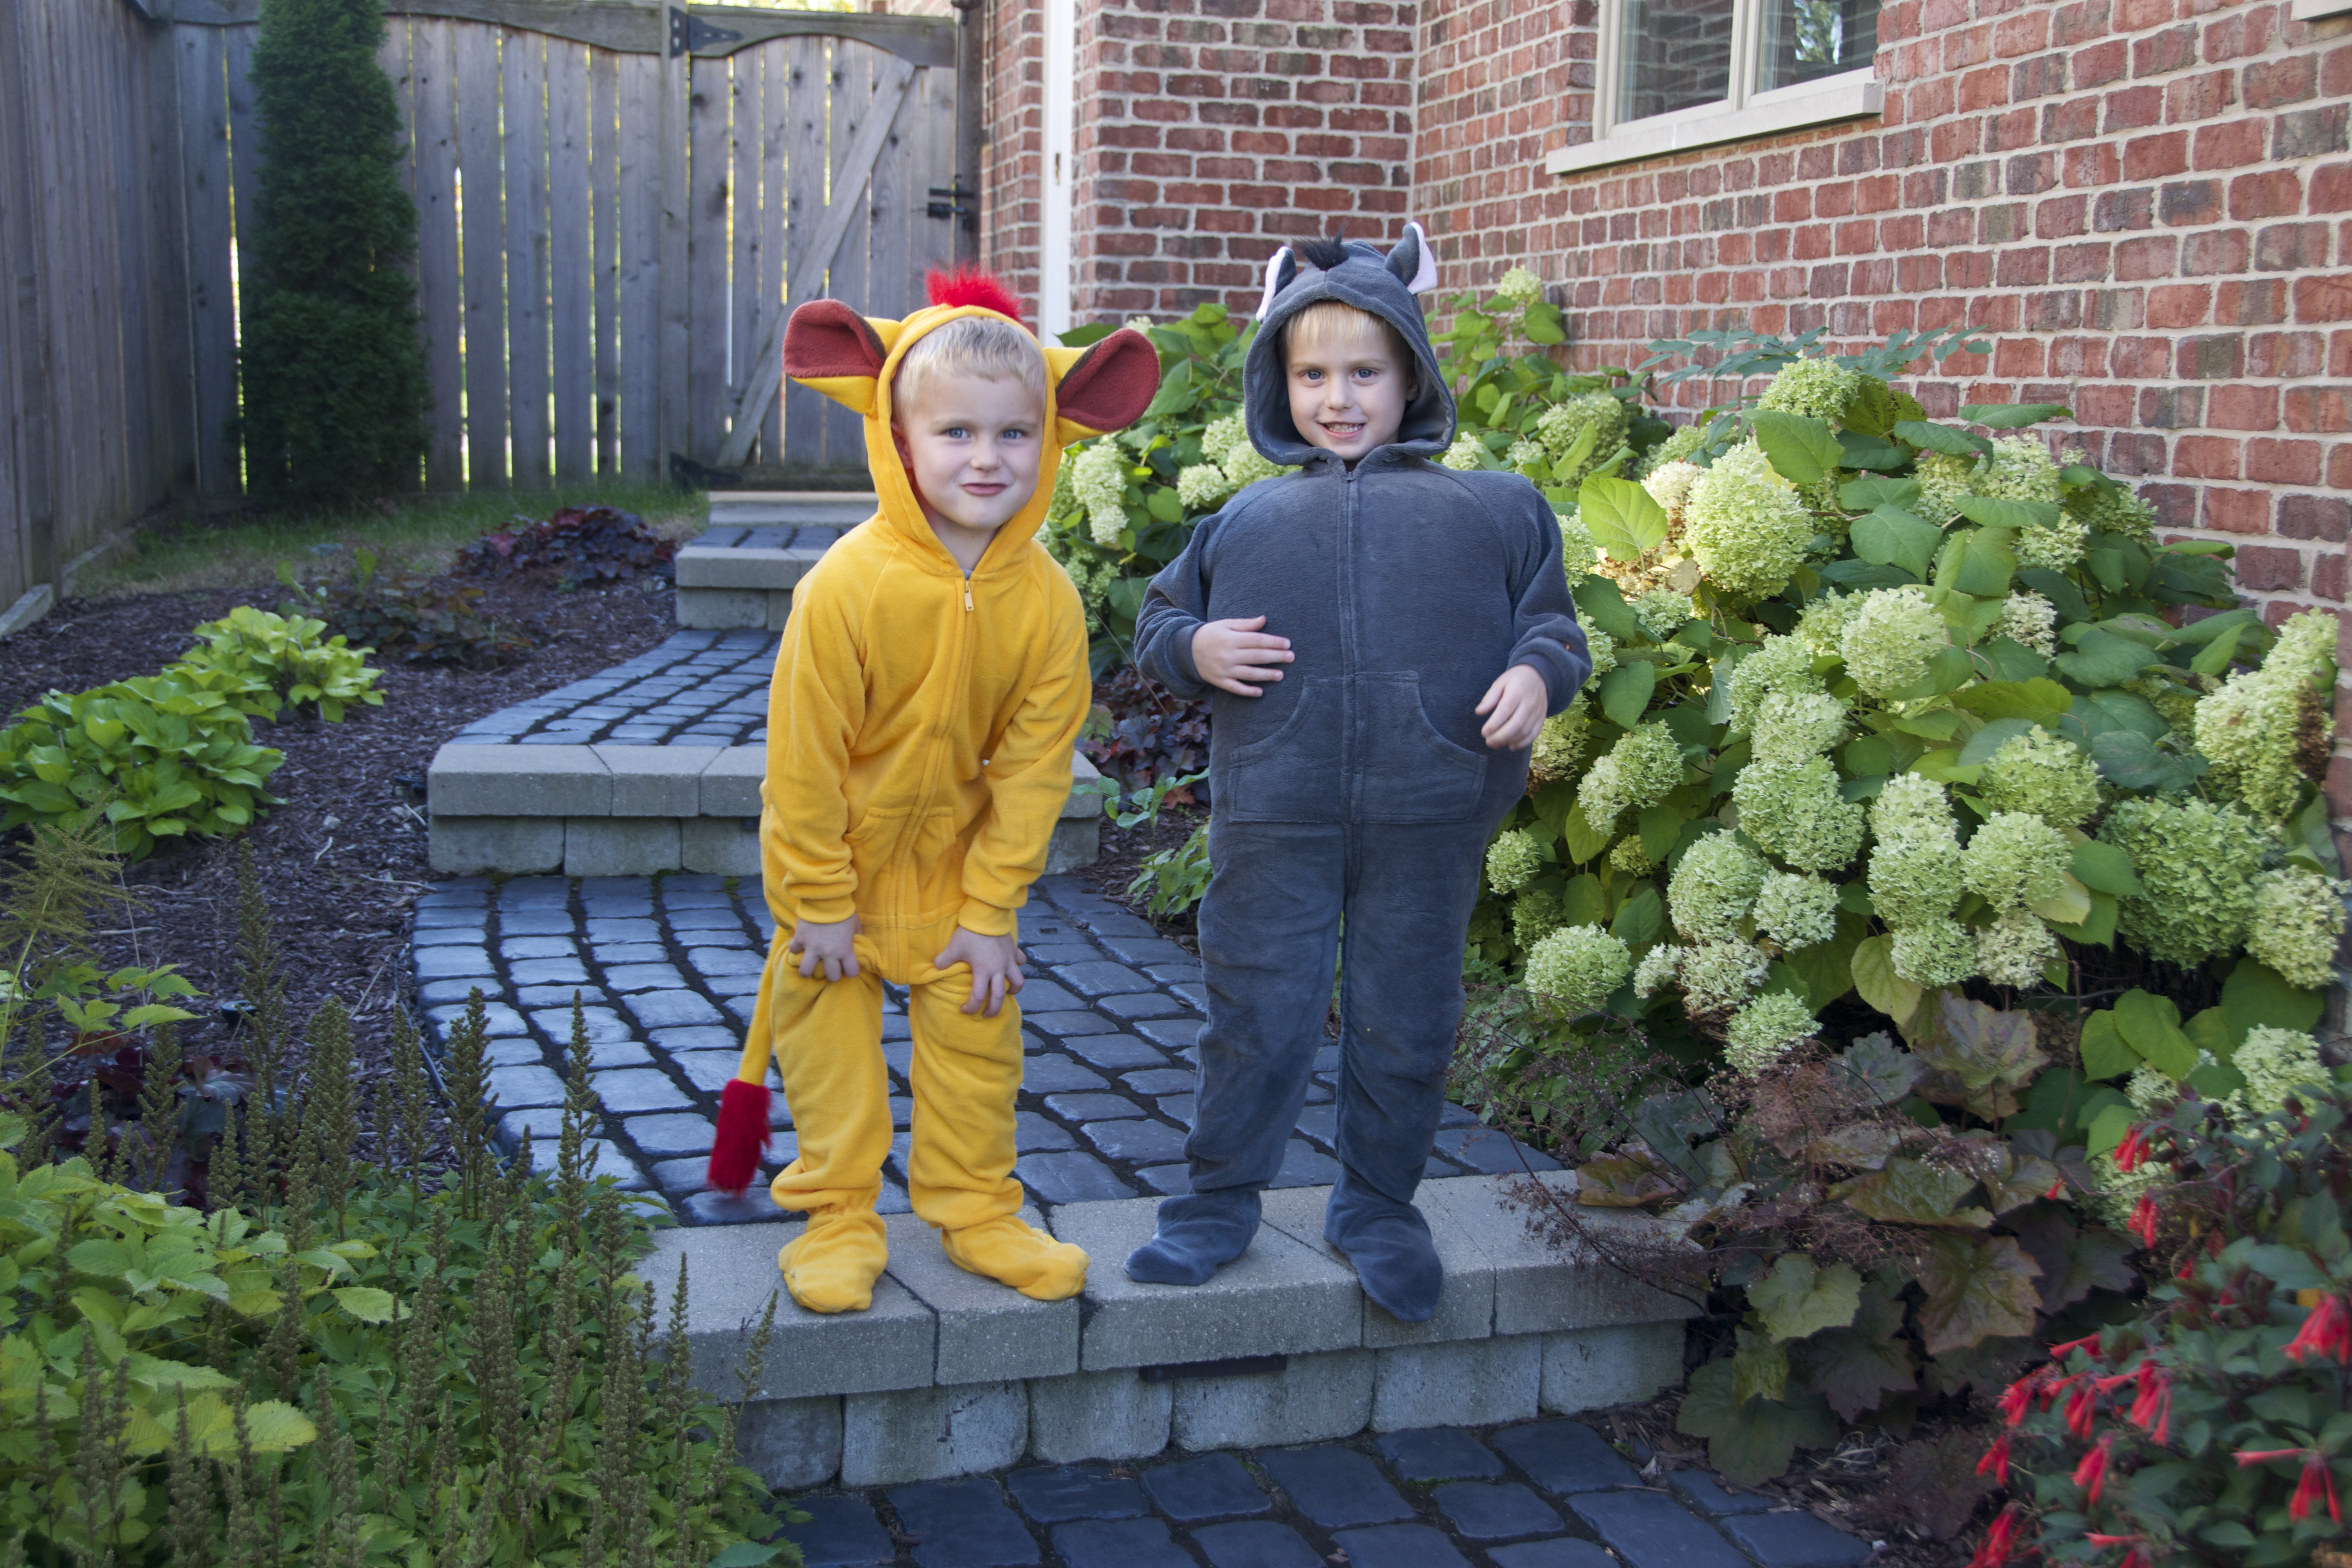 Diy Lion Guard Costumes Projects In Parenting